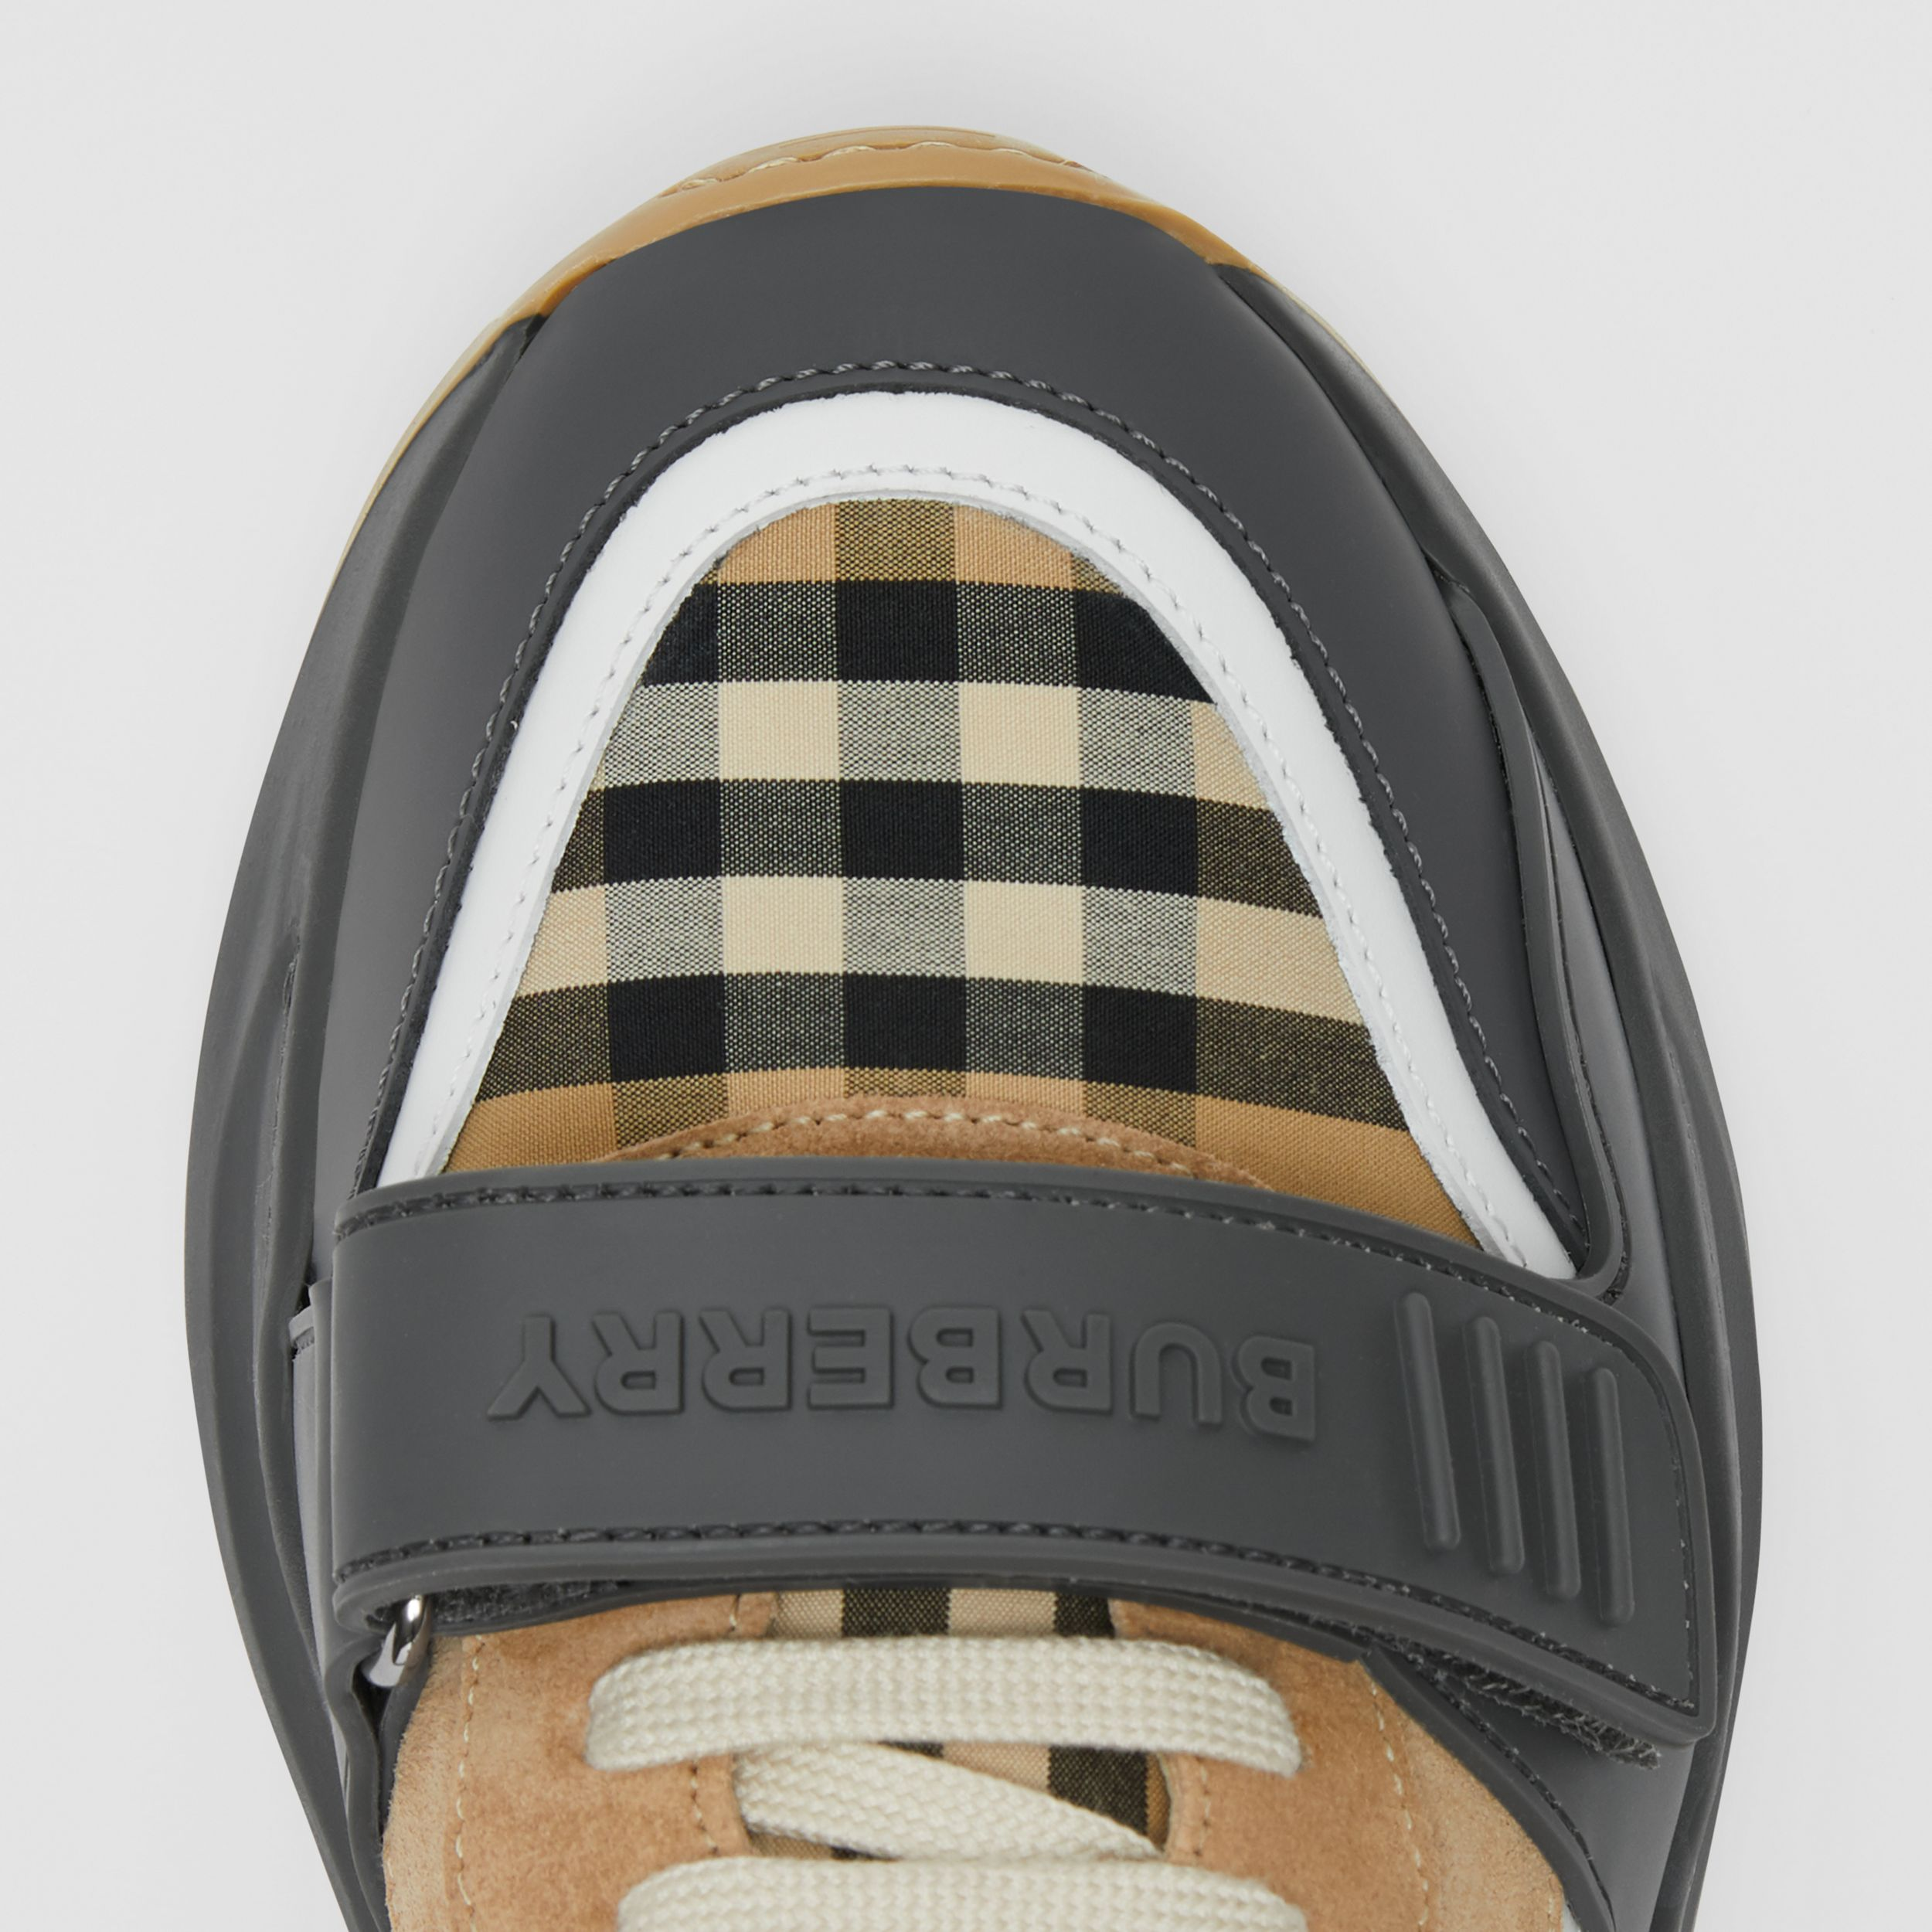 Vintage Check, Suede and Leather Sneakers in Grey/archive Beige - Women | Burberry - 2